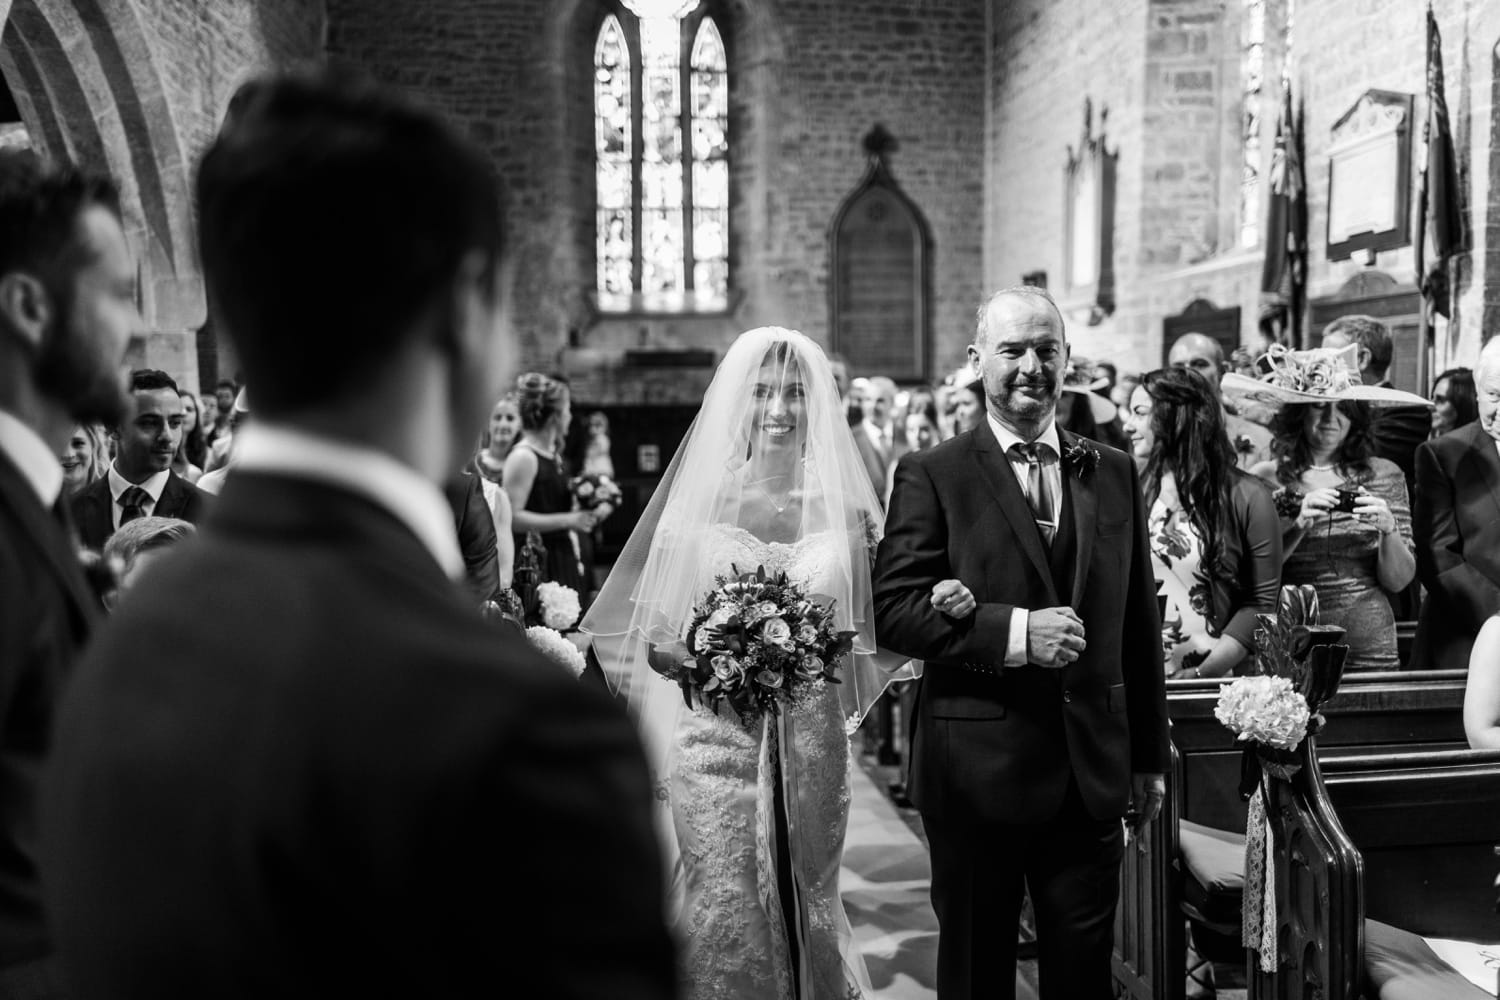 Bride and father walking down the aisle at St Andrews Church in Clevedon, Somerset